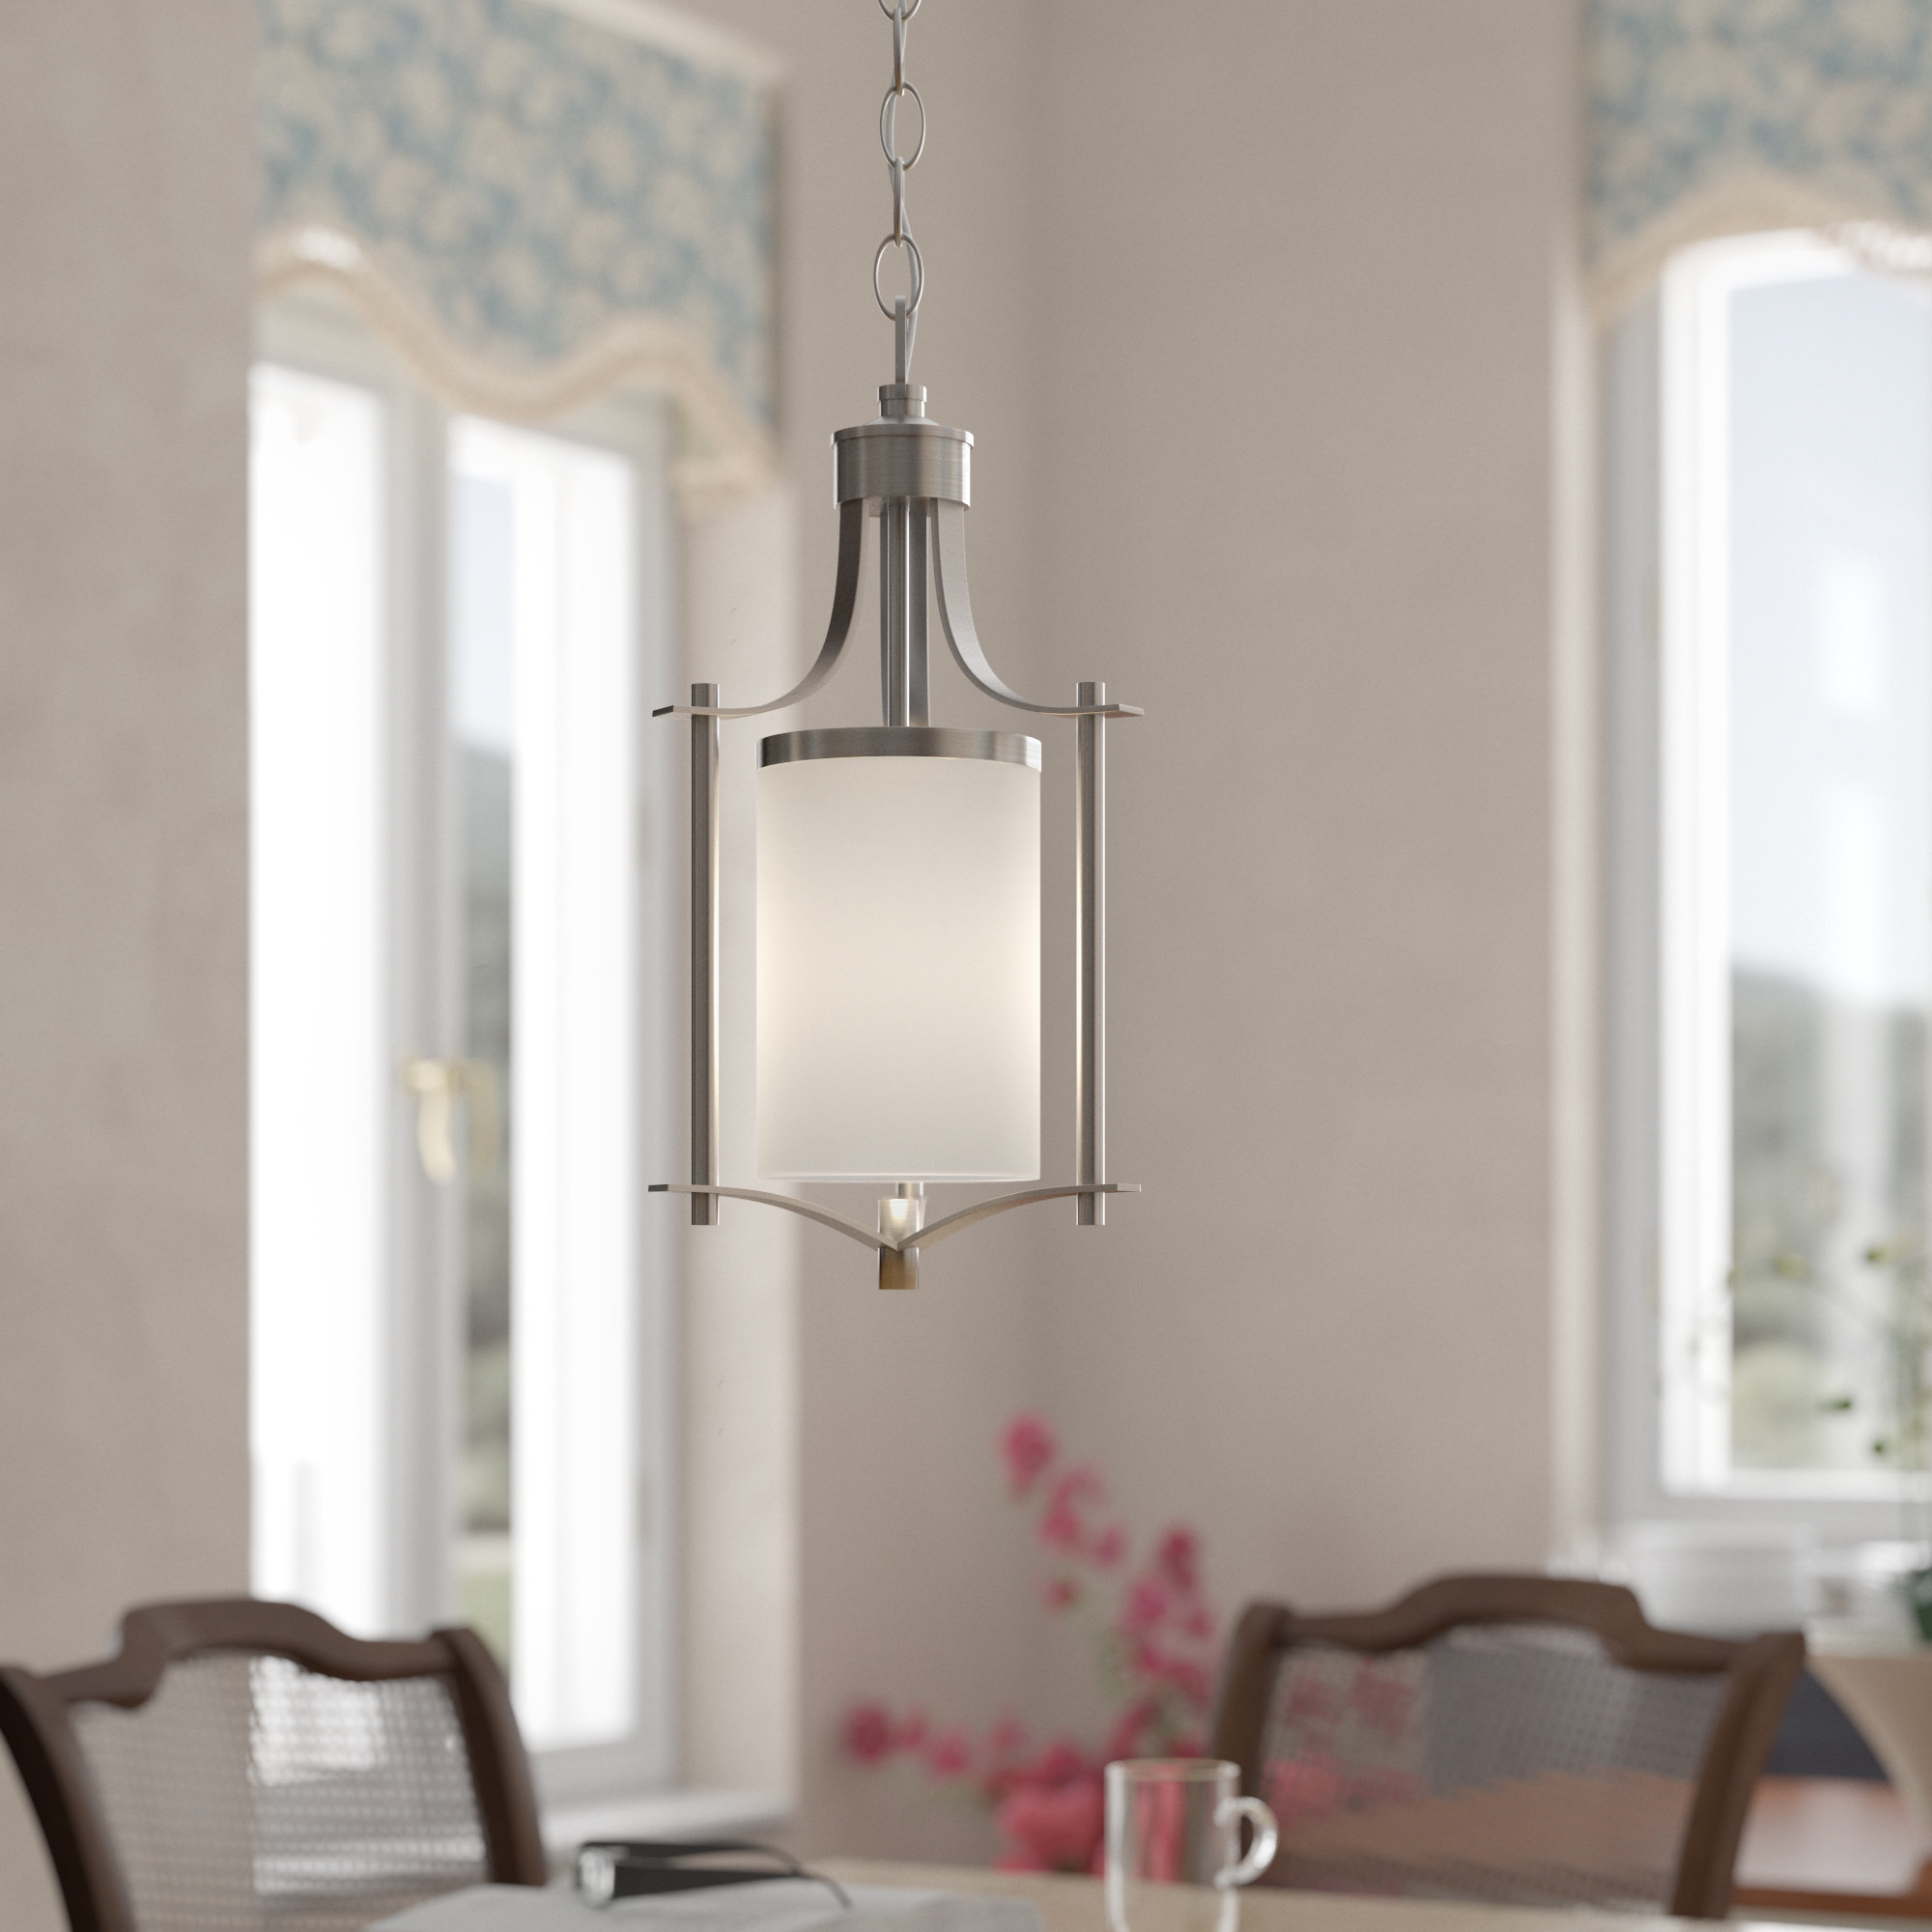 Pewter & Silver & Satin Nickel Pendant Lighting You'll Love Intended For Well Known Kimsey 1 Light Teardrop Pendants (View 24 of 25)